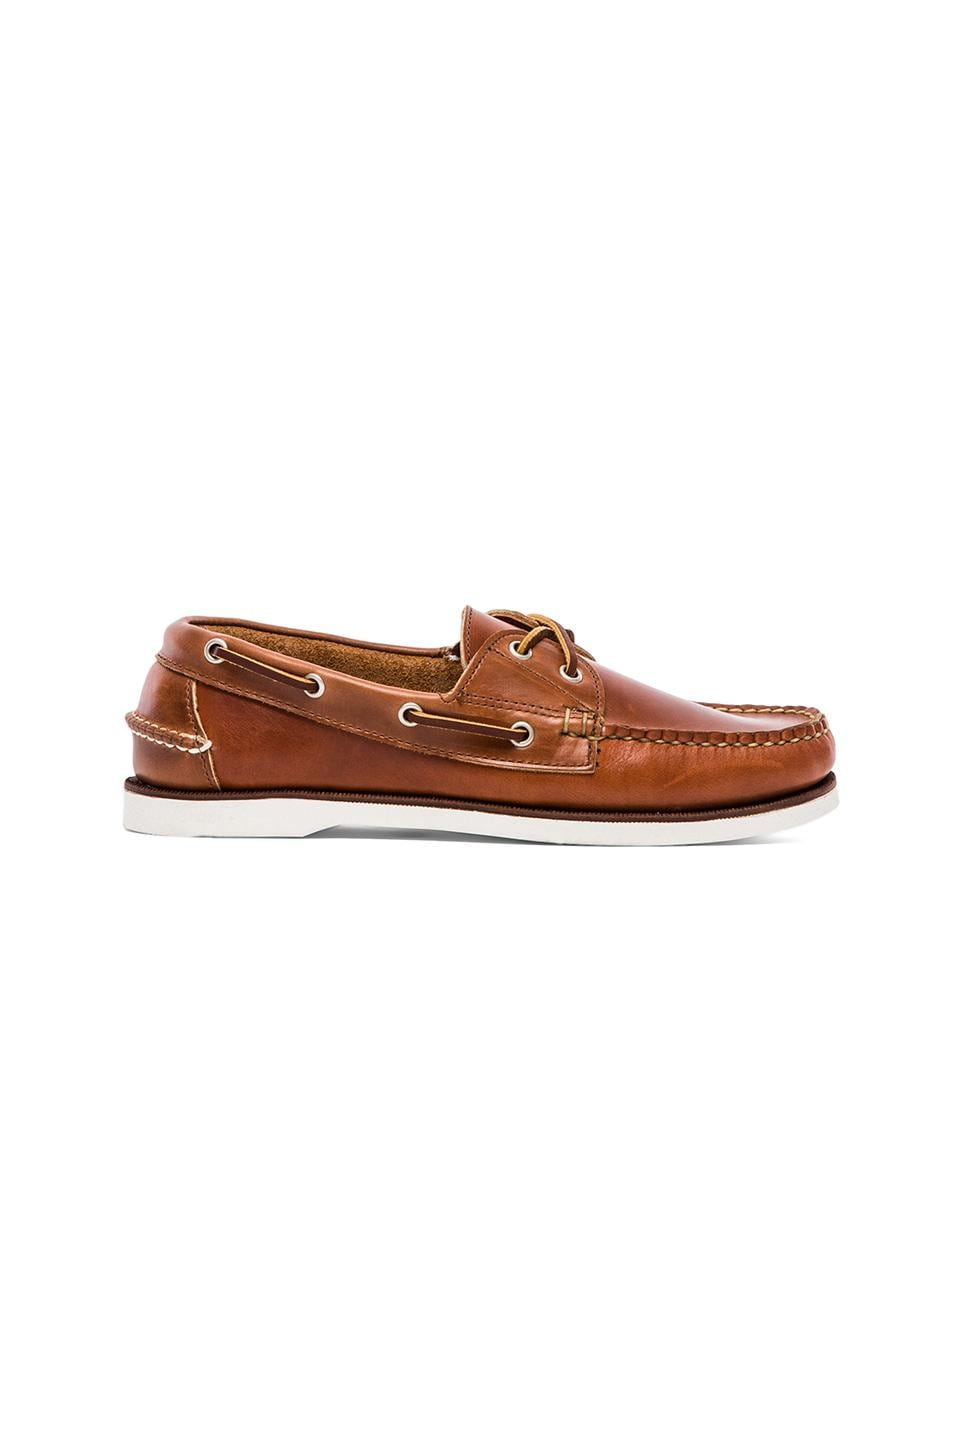 Eastland Made in Maine Freeport USA in Chicago Tan